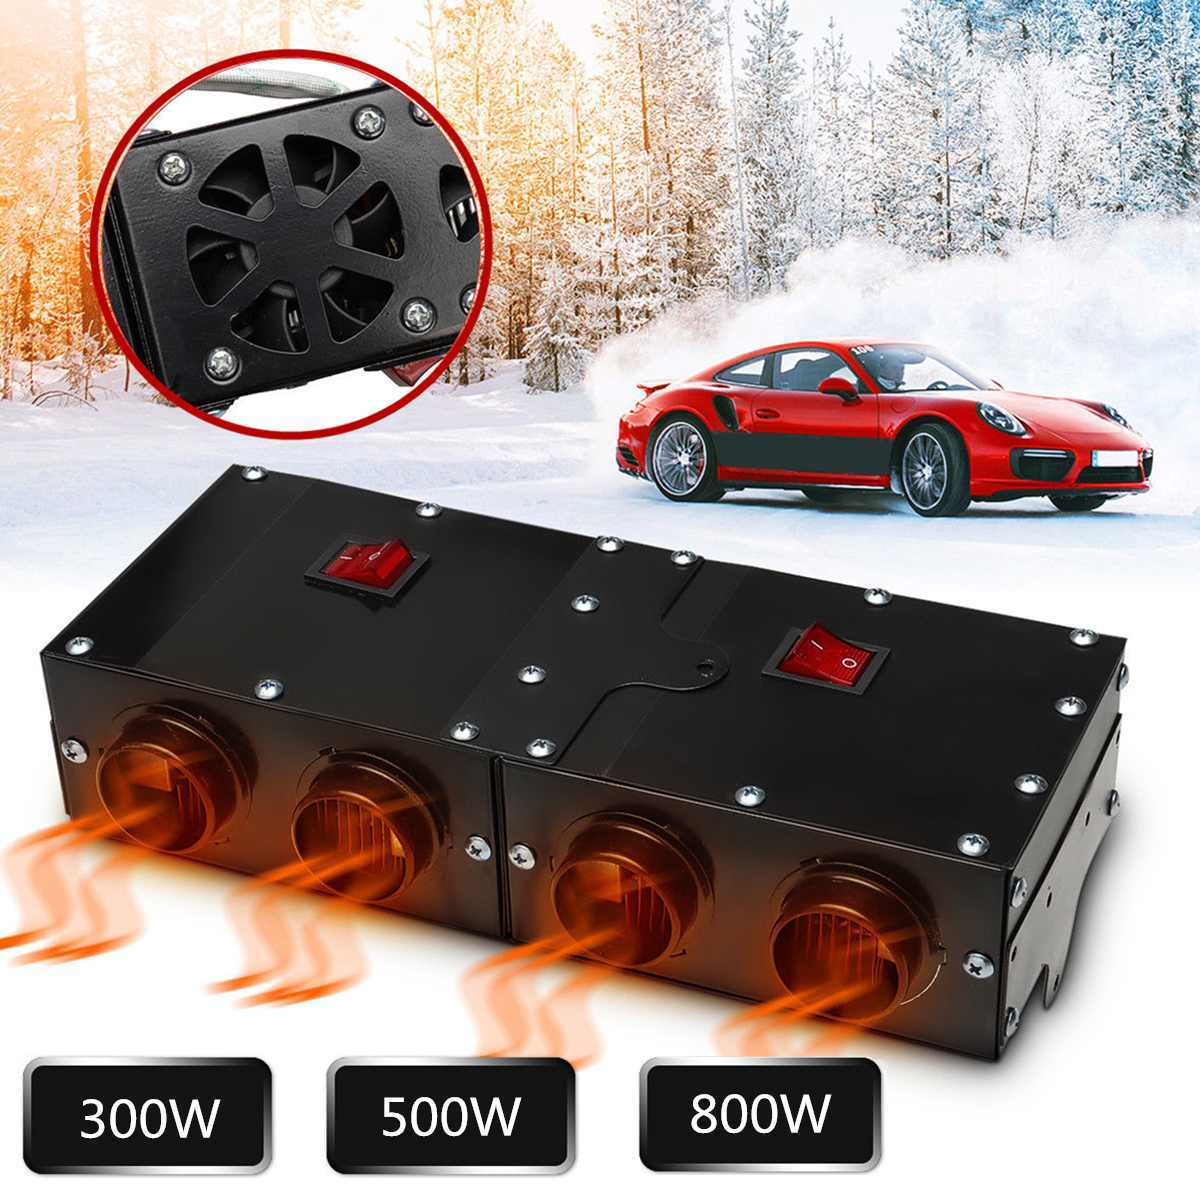 Detail Feedback Questions About Portable Universal Dc 12v 800w Car Vehicle Fan Heater Defroster Electric Heating Windshield